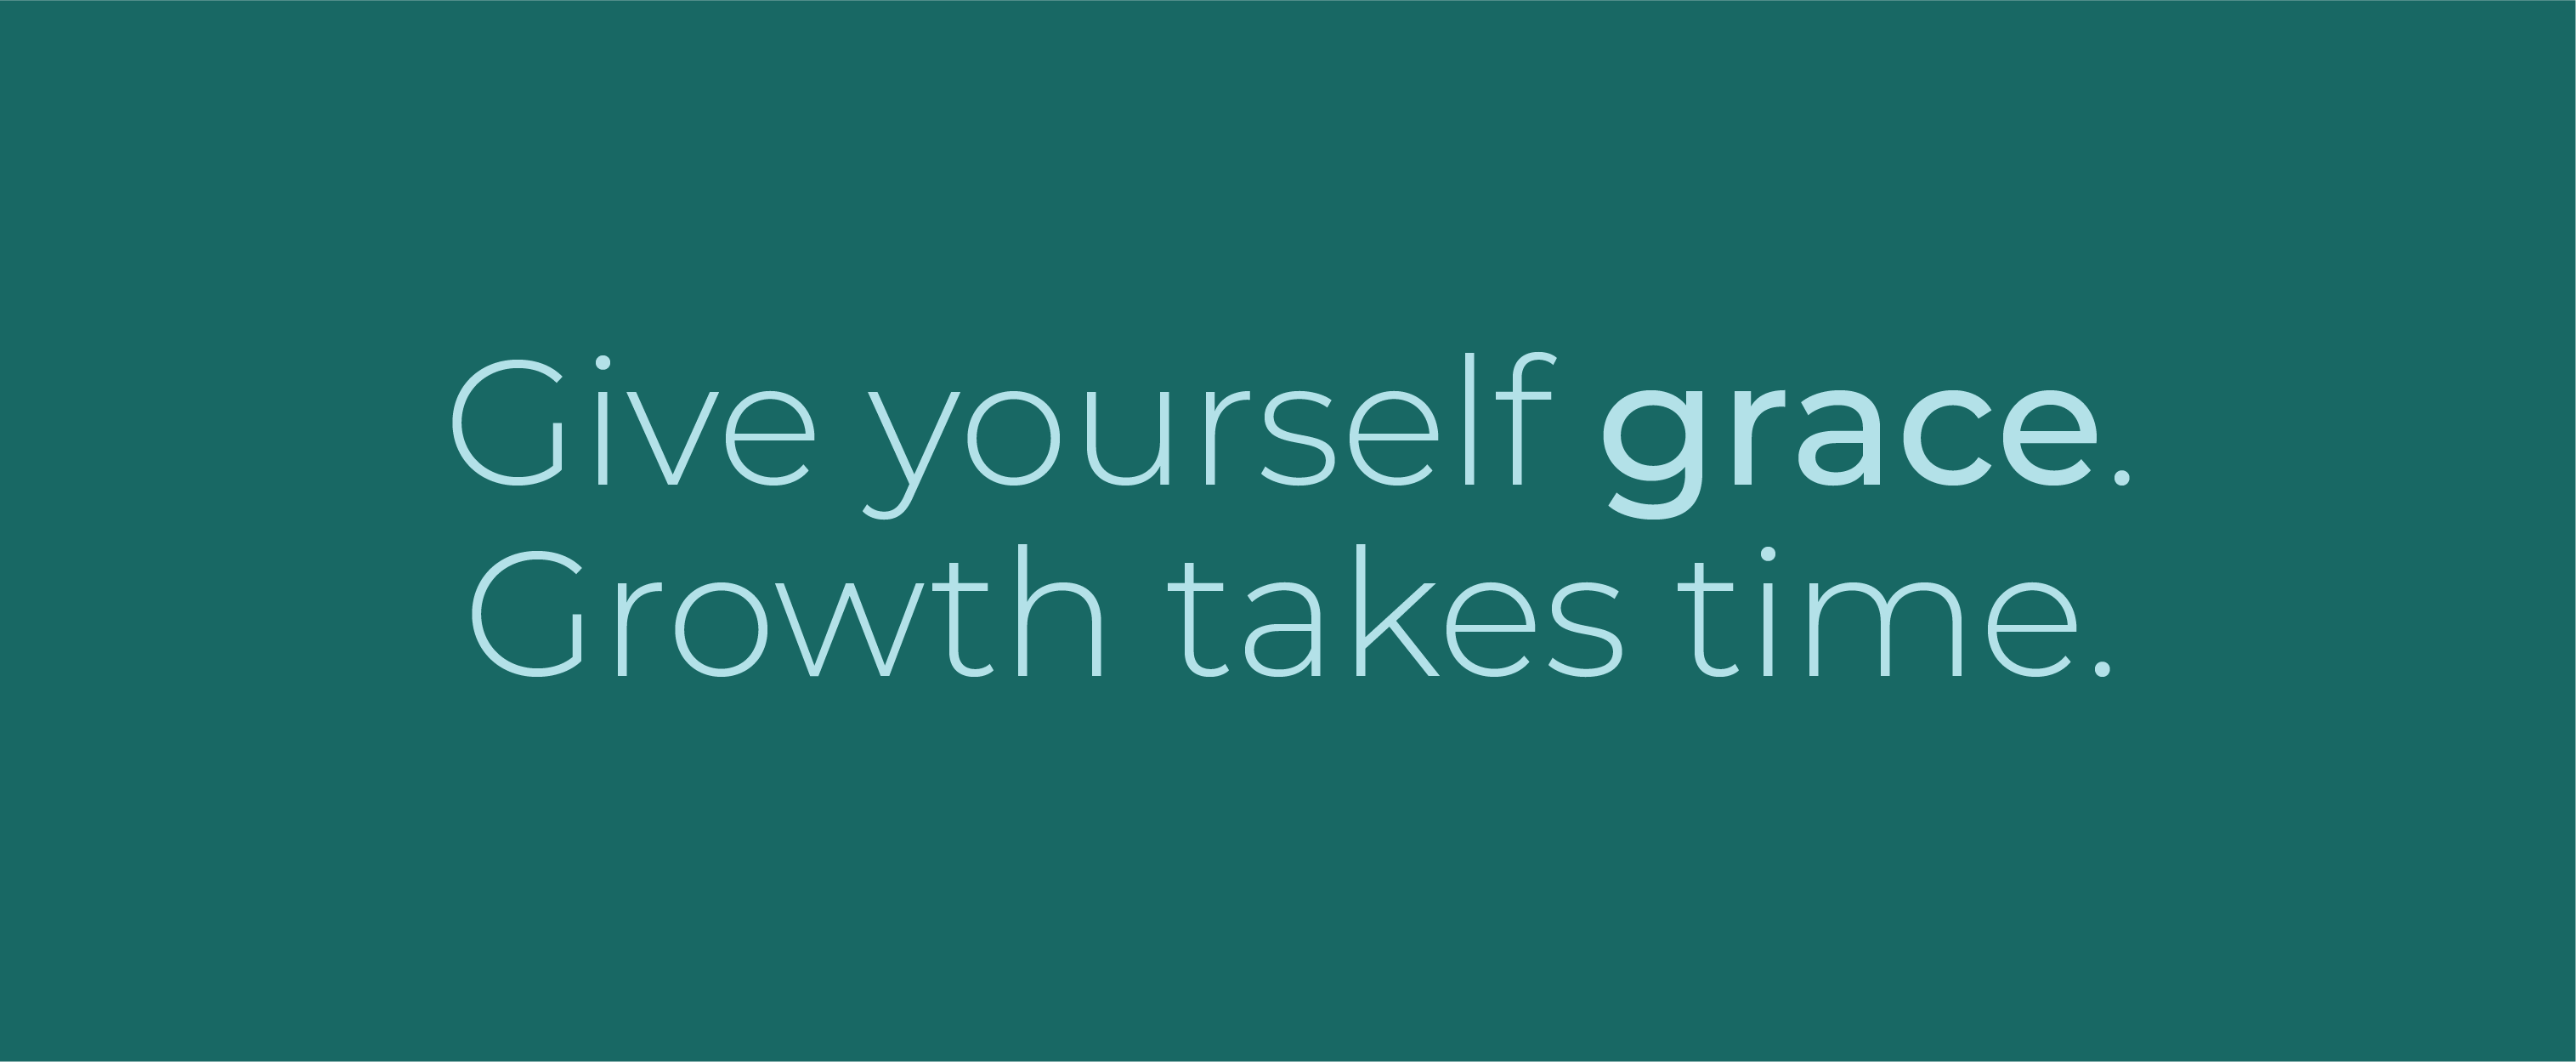 Give yourself grace. Growth takes time.